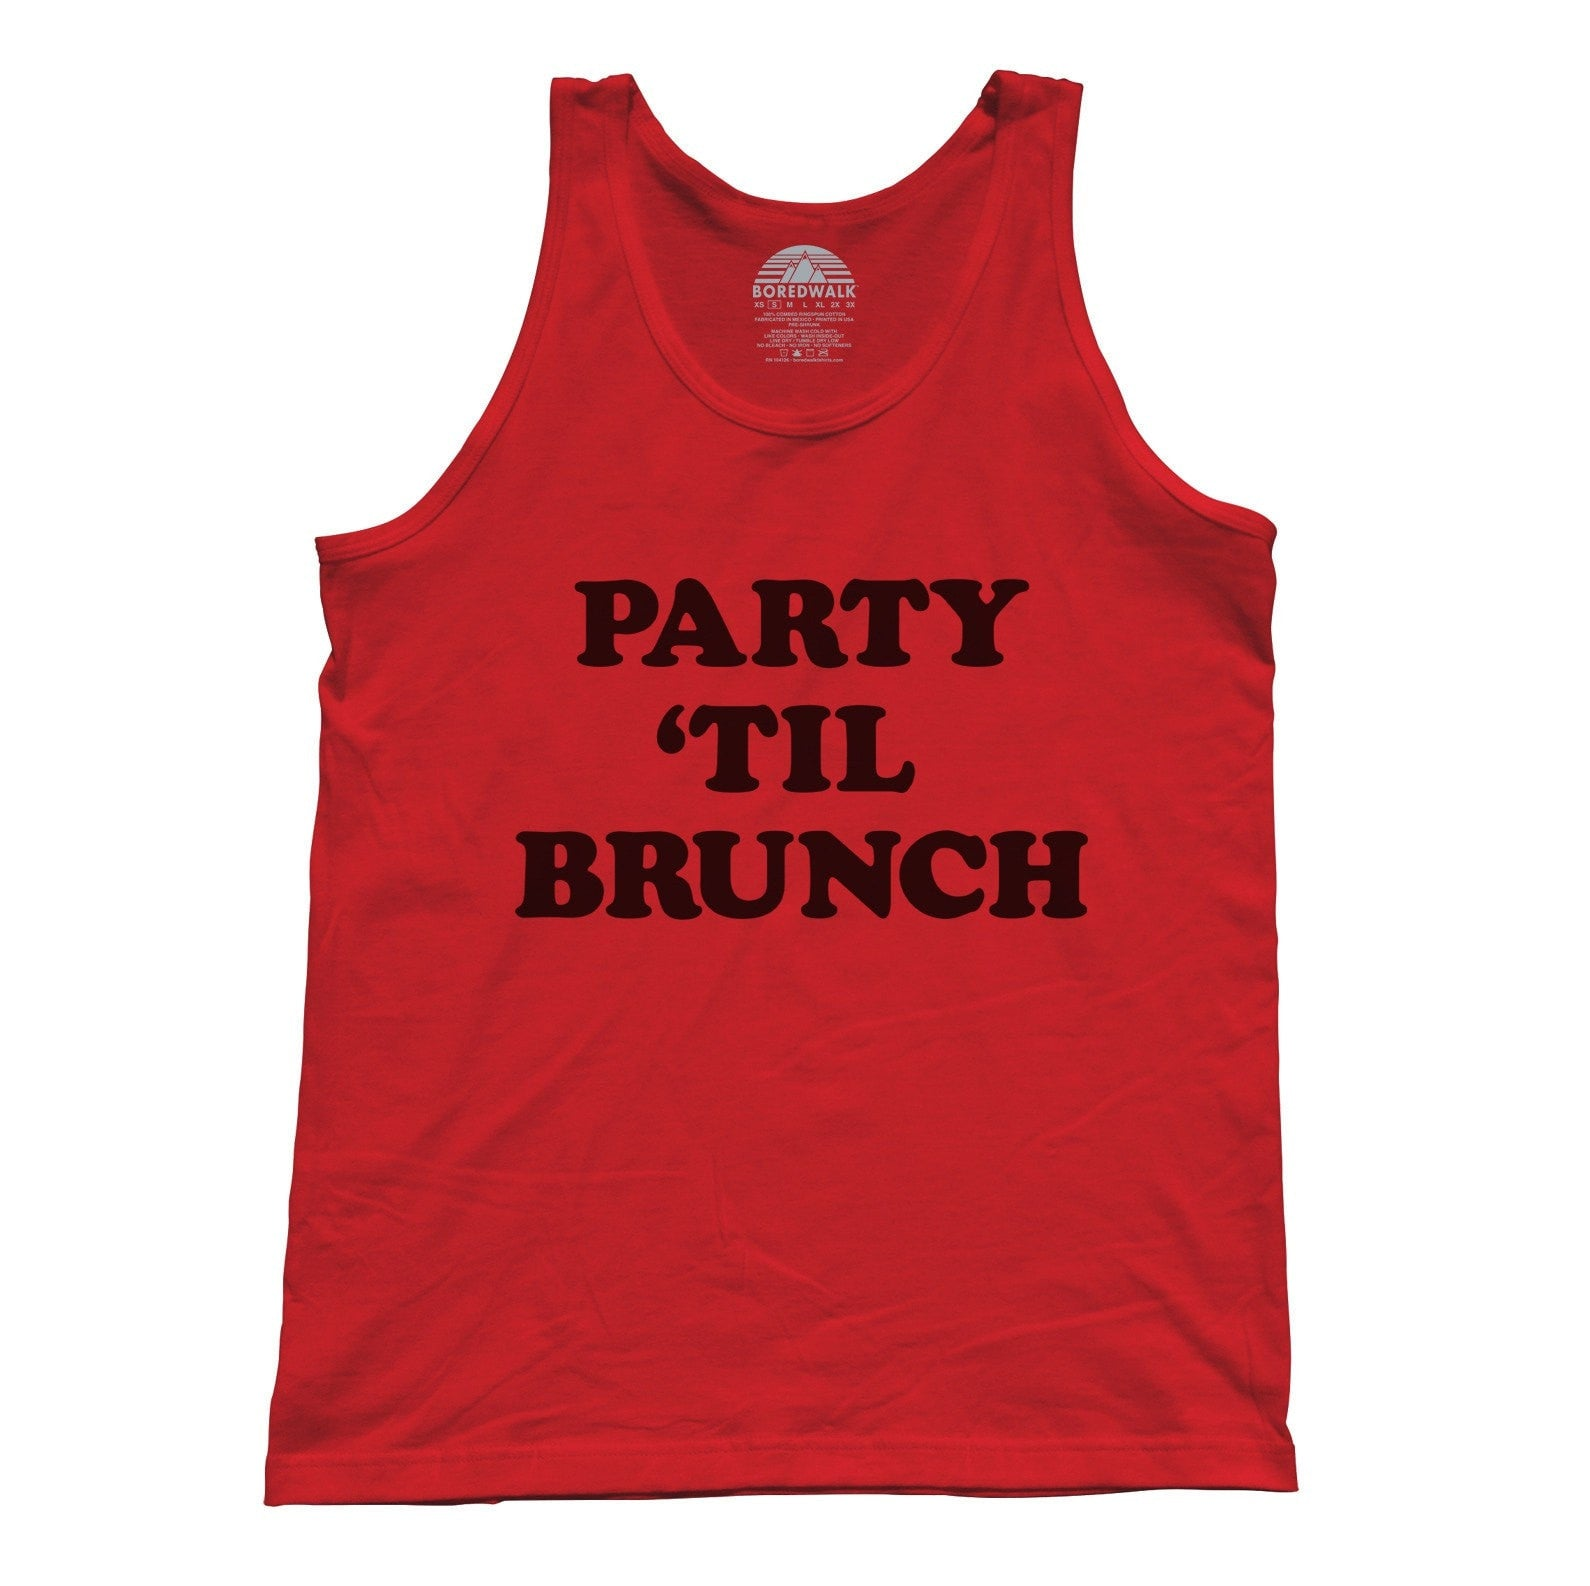 Unisex Party Til Brunch Tank Top Late Night Party